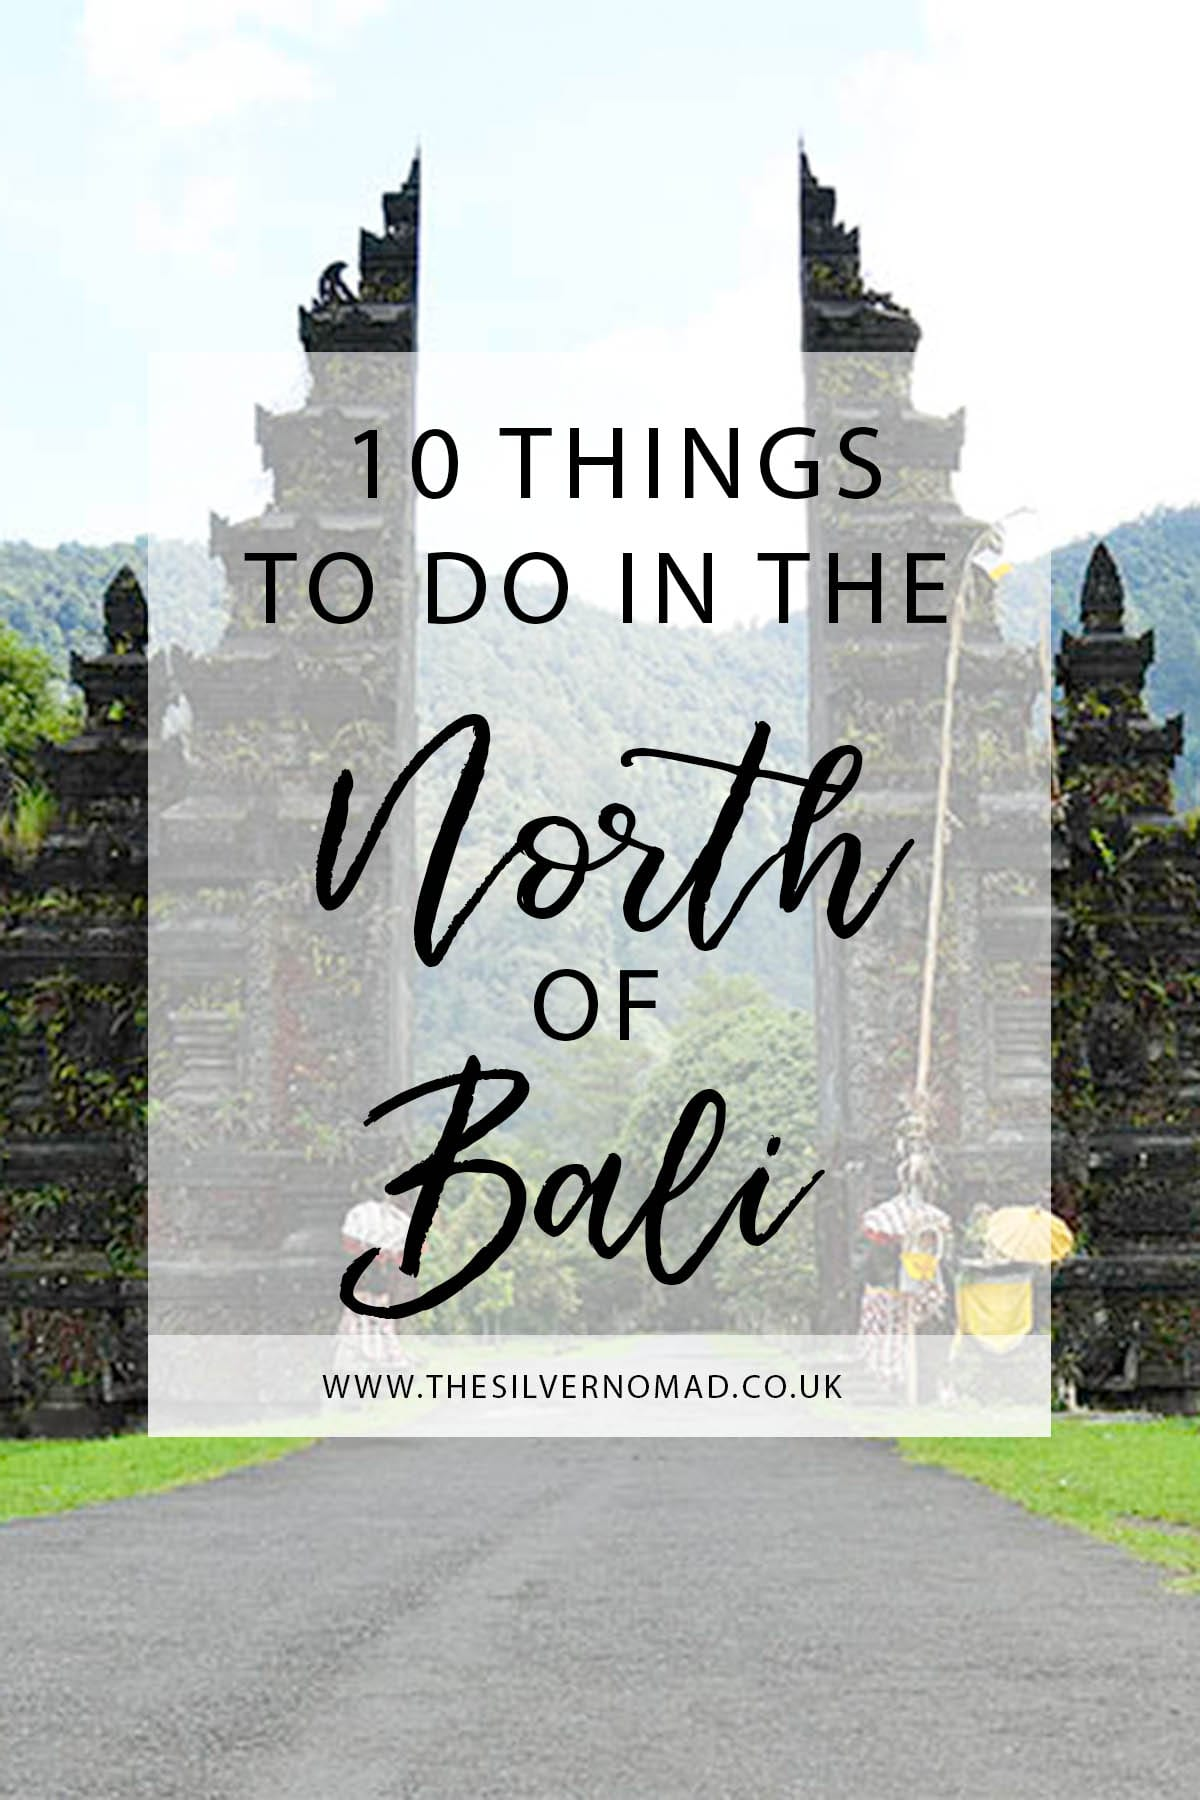 10 Things to do in the North of Bali - Visit the Handara Gates for a perfectly framed Instagram shot - www.thesilvernomad.co.uk